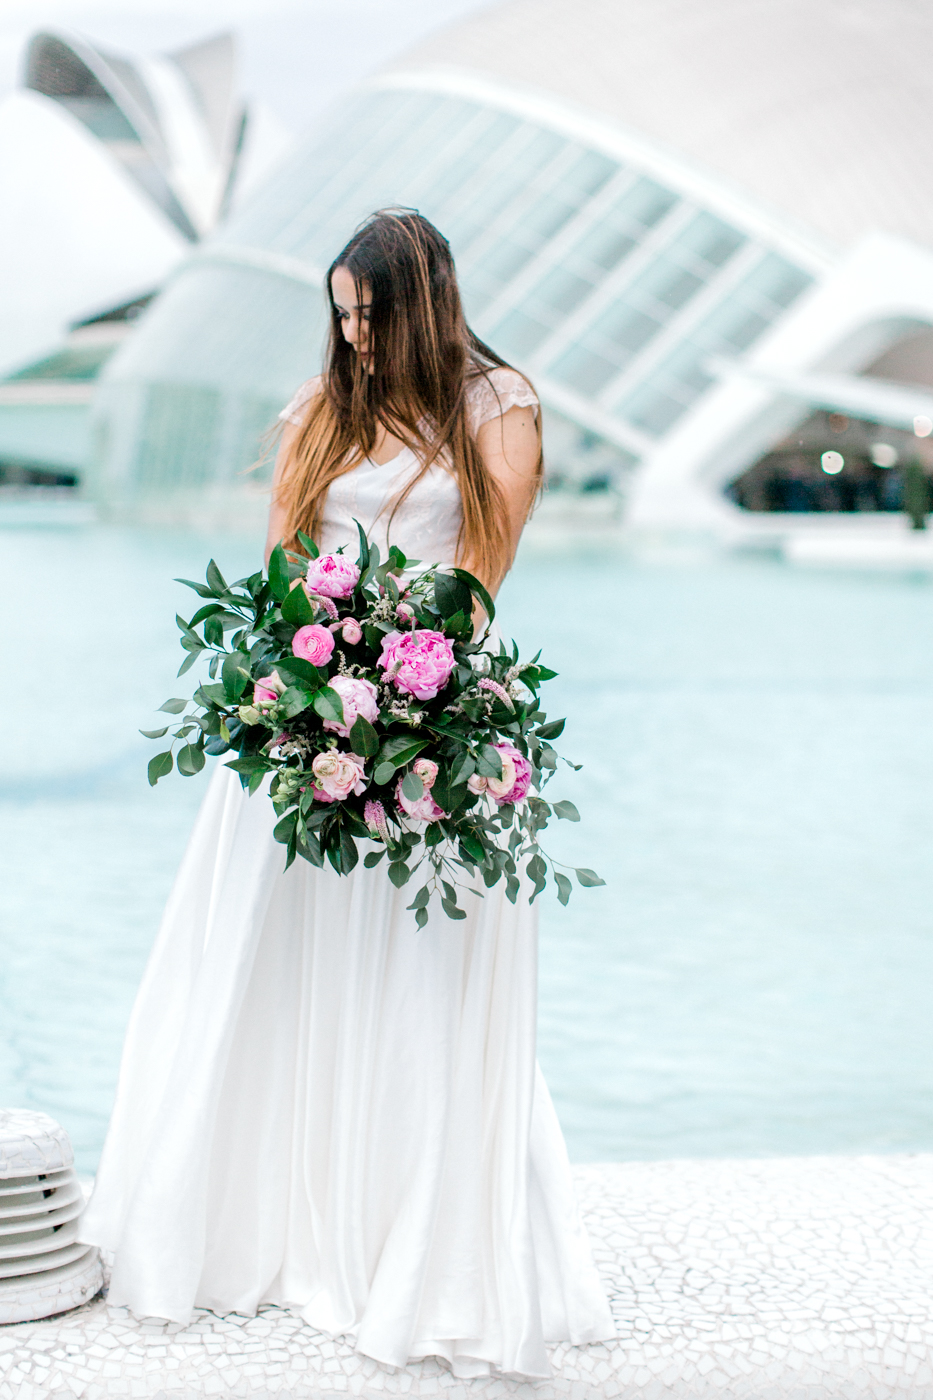 four corners photography valencia wedding photographer rad wedding photographer best spain wedding photographer wedding in spain  (14 of 39).jpg